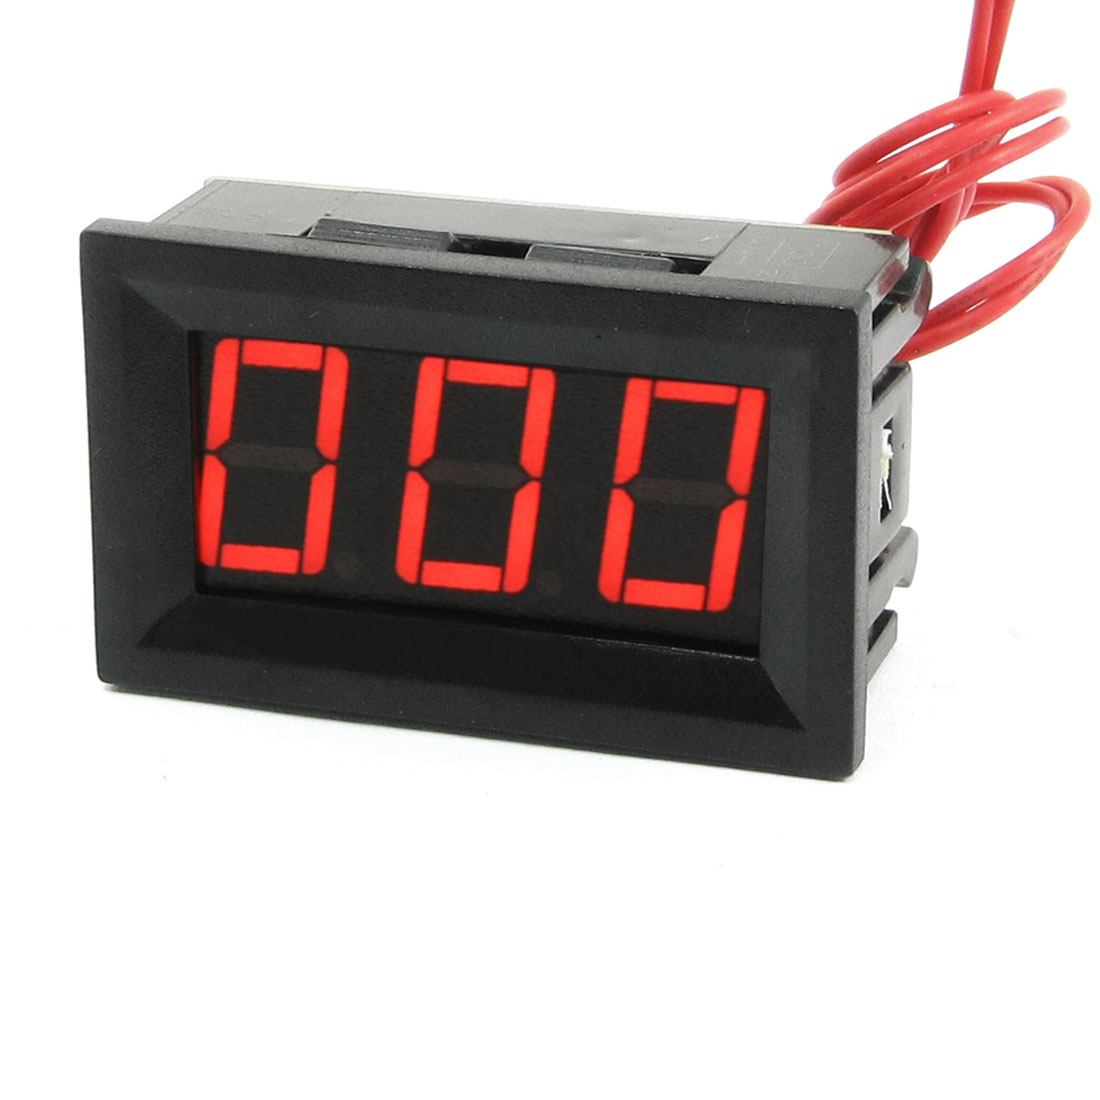 V27A LED 2Line 3-Digital Alternating Current Voltmeter Black AC60-500V